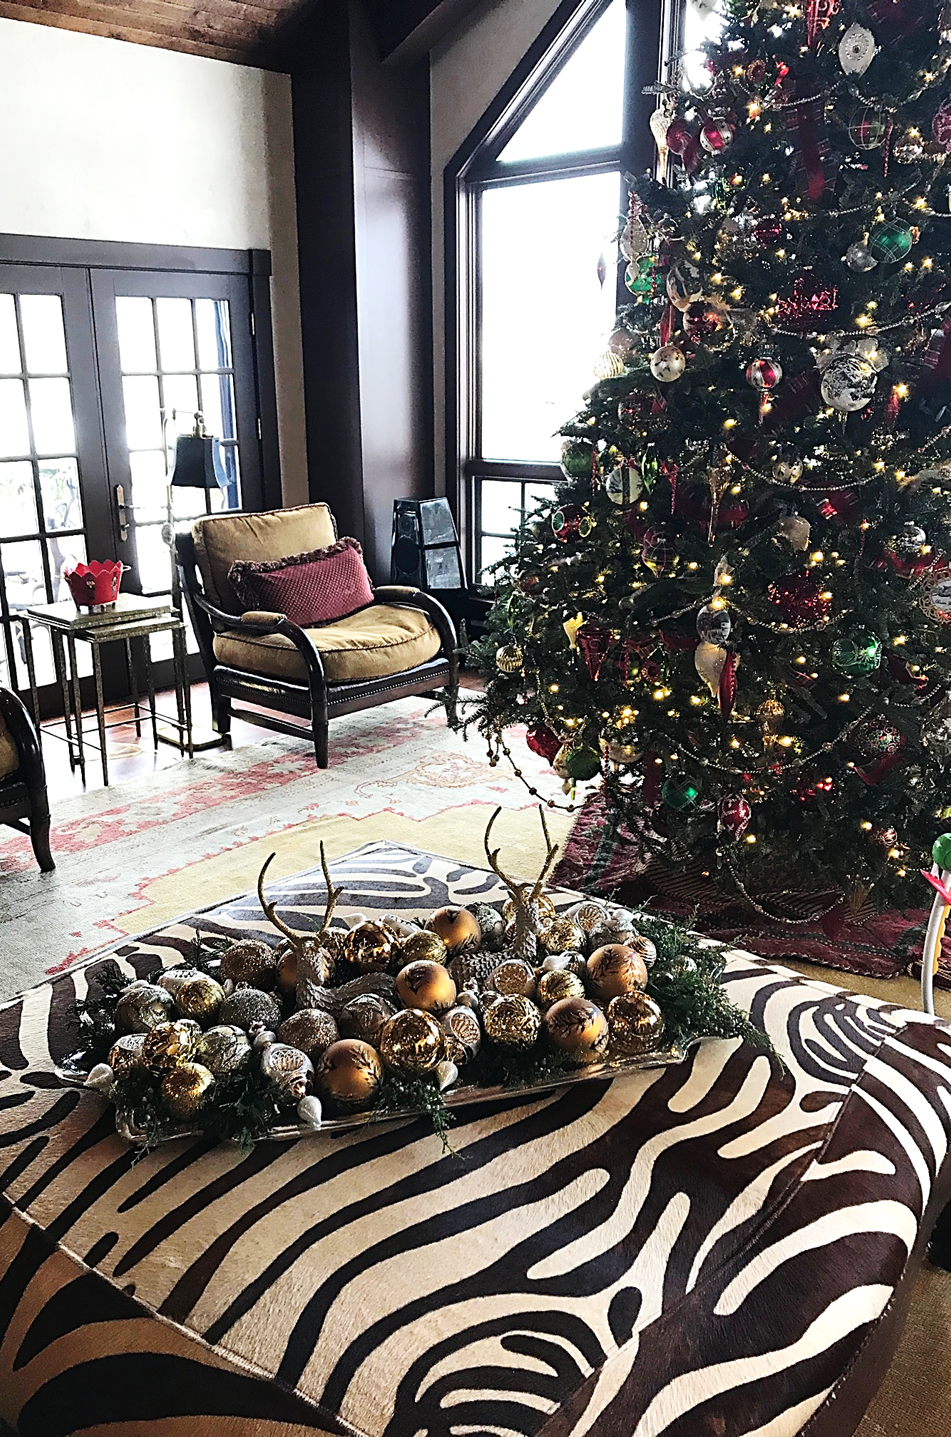 Living Room Holiday Tree and Decor